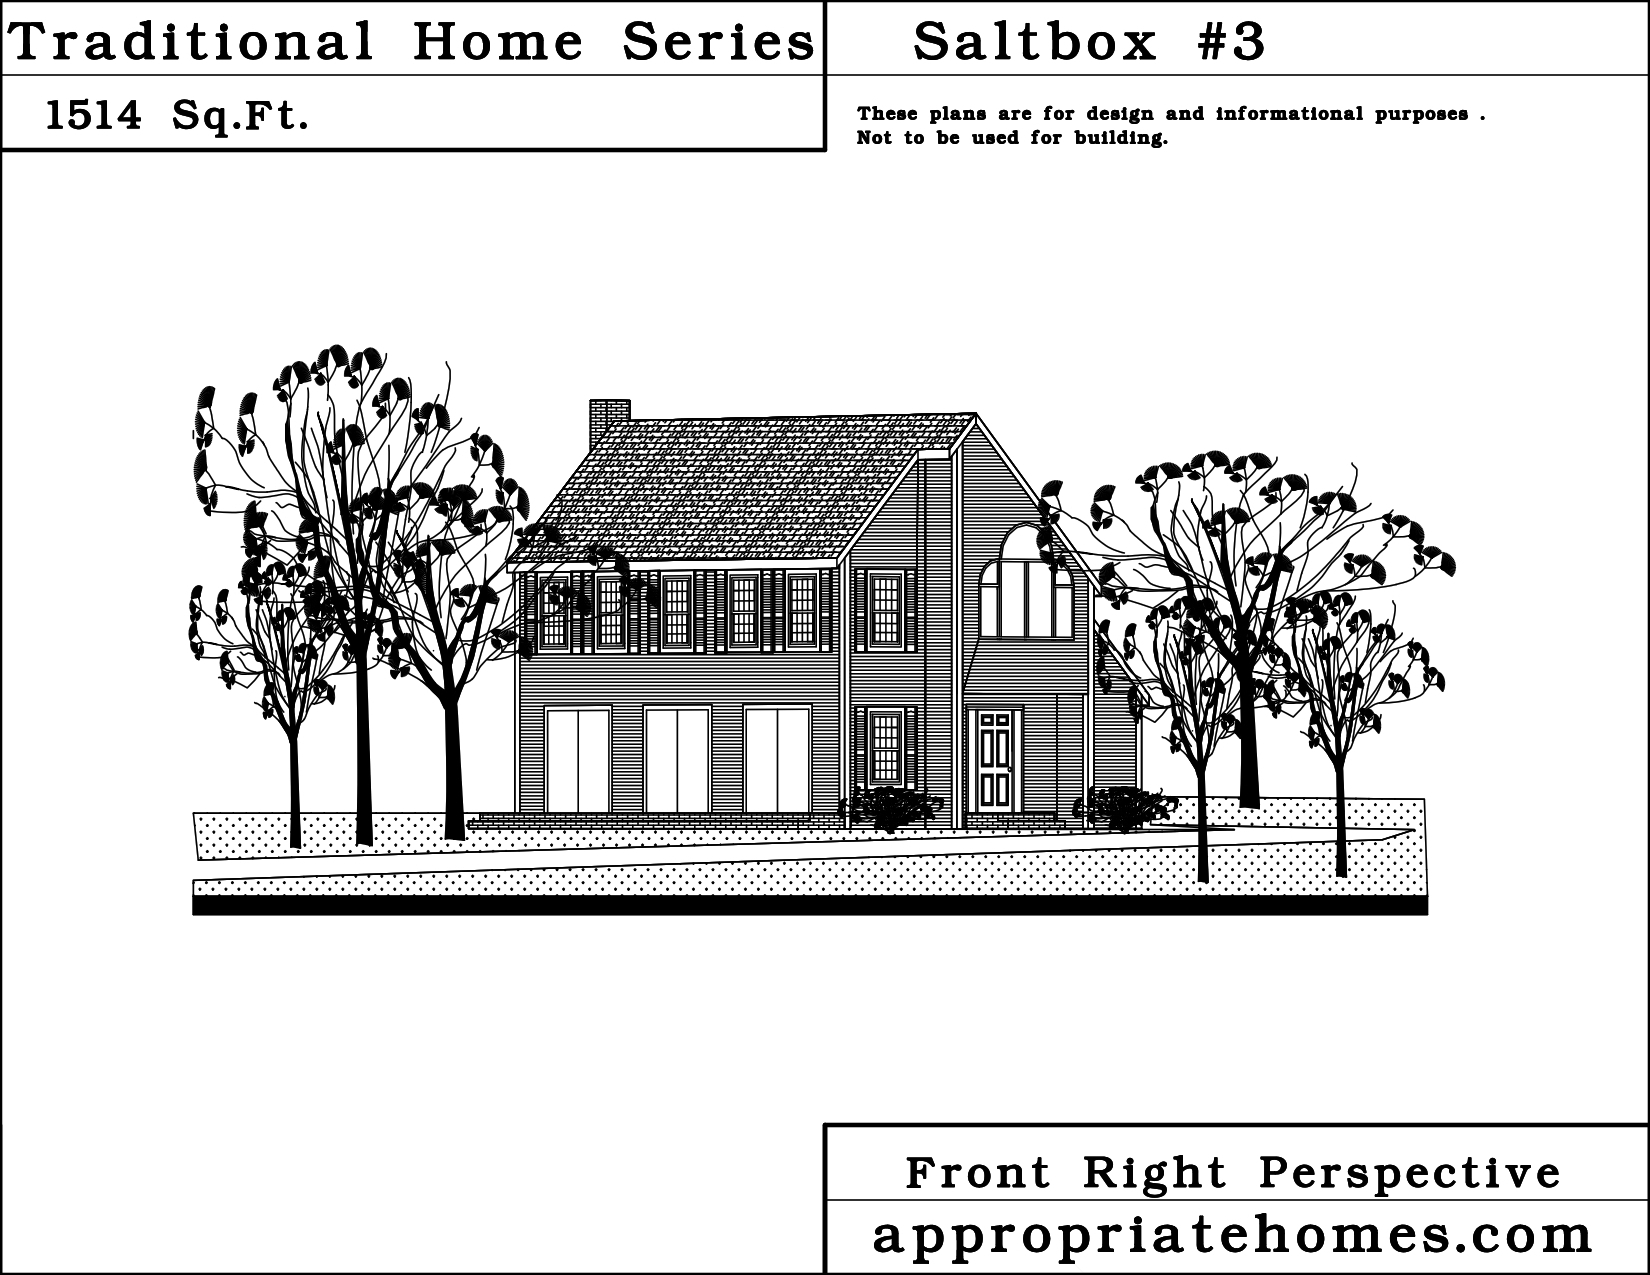 Cape cod home design saltbox style house plans builder for Saltbox house additions